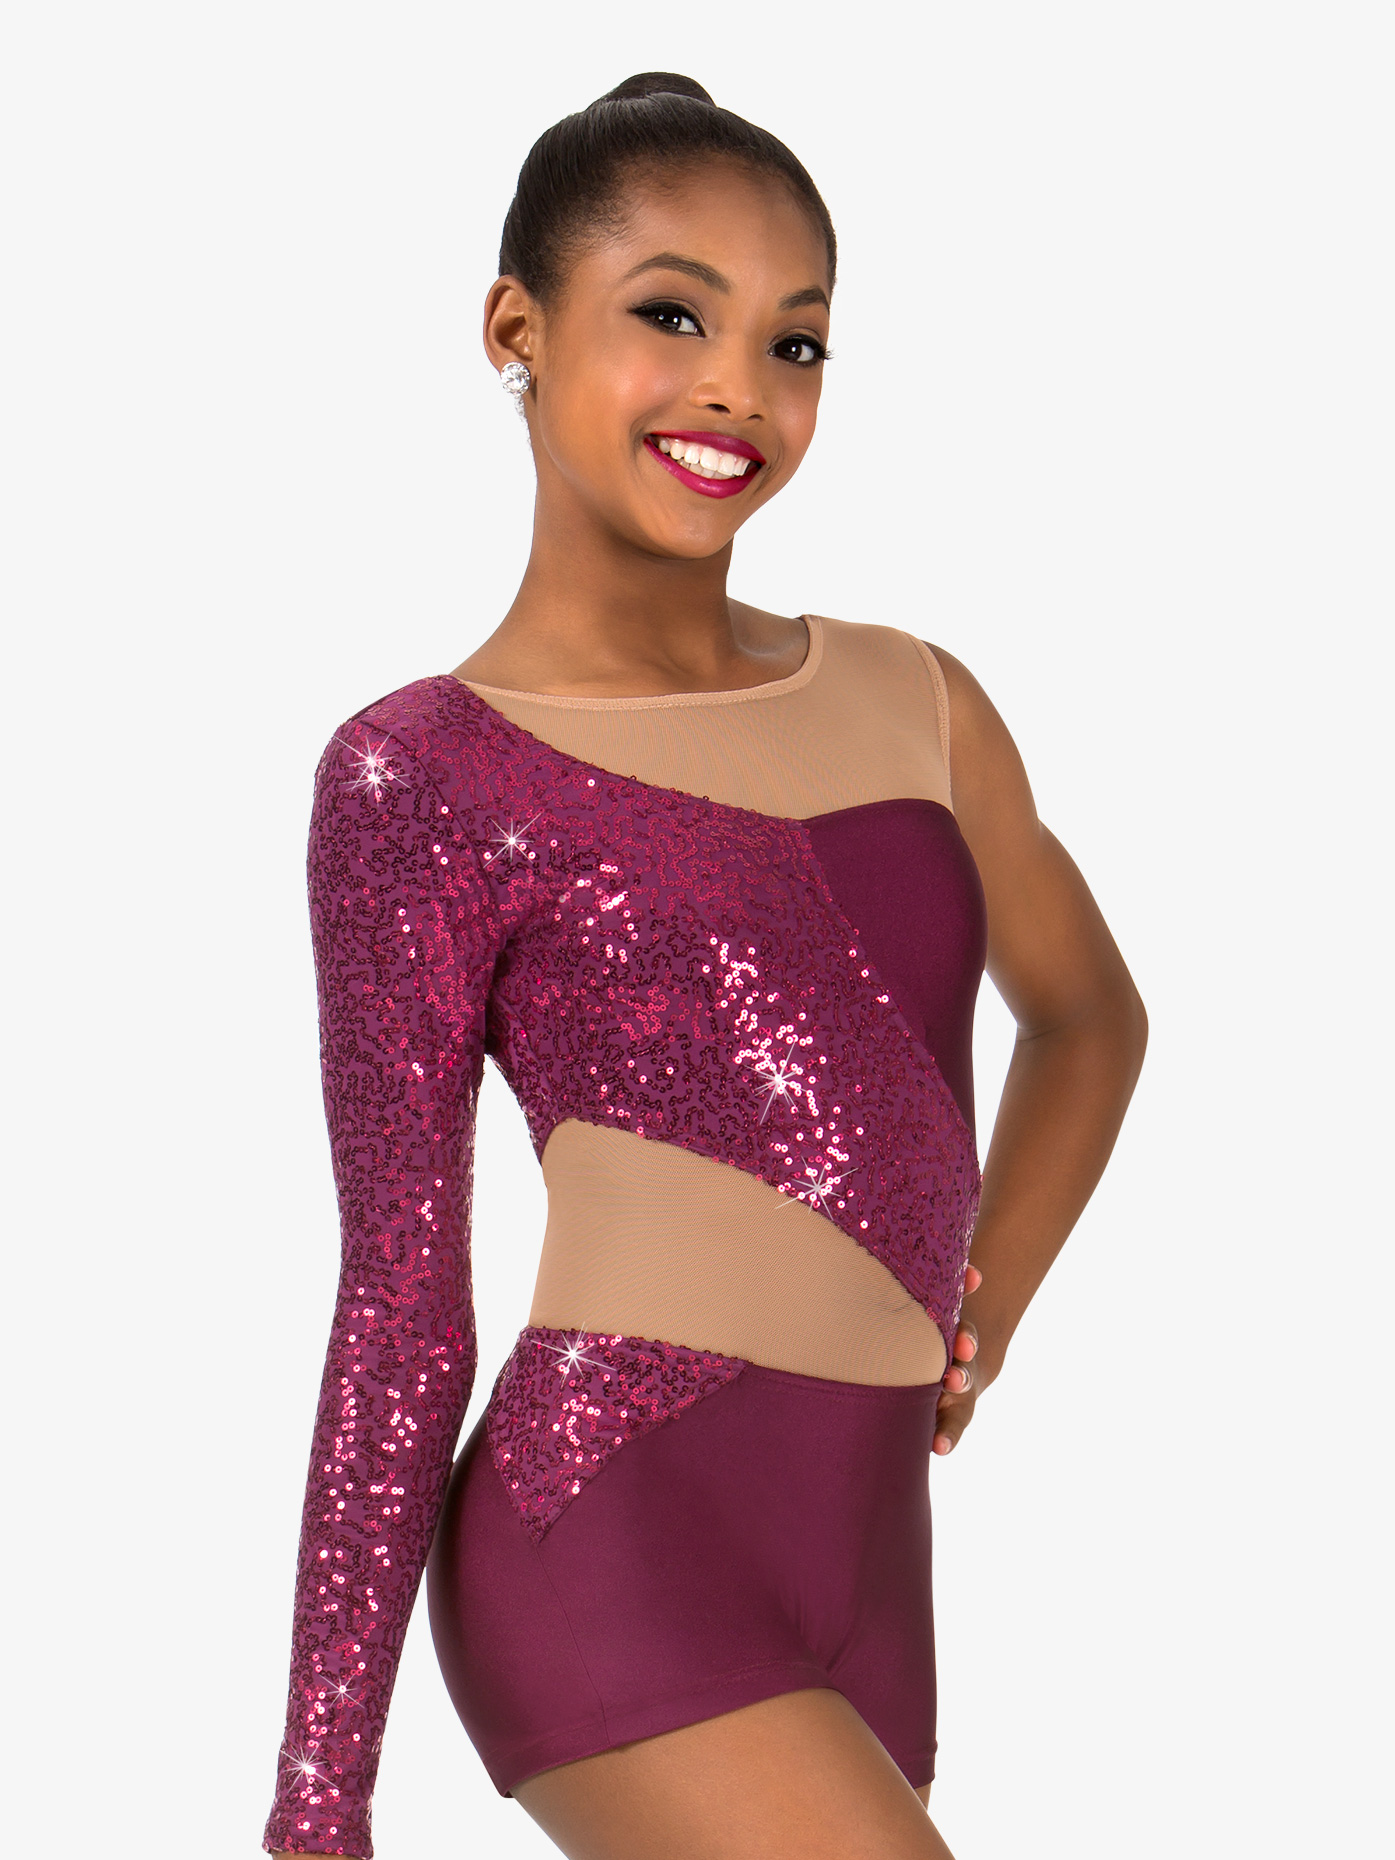 Elisse by Double Platinum Girls Asymmetrical Sequin Jazz Shorty Unitard N7456C